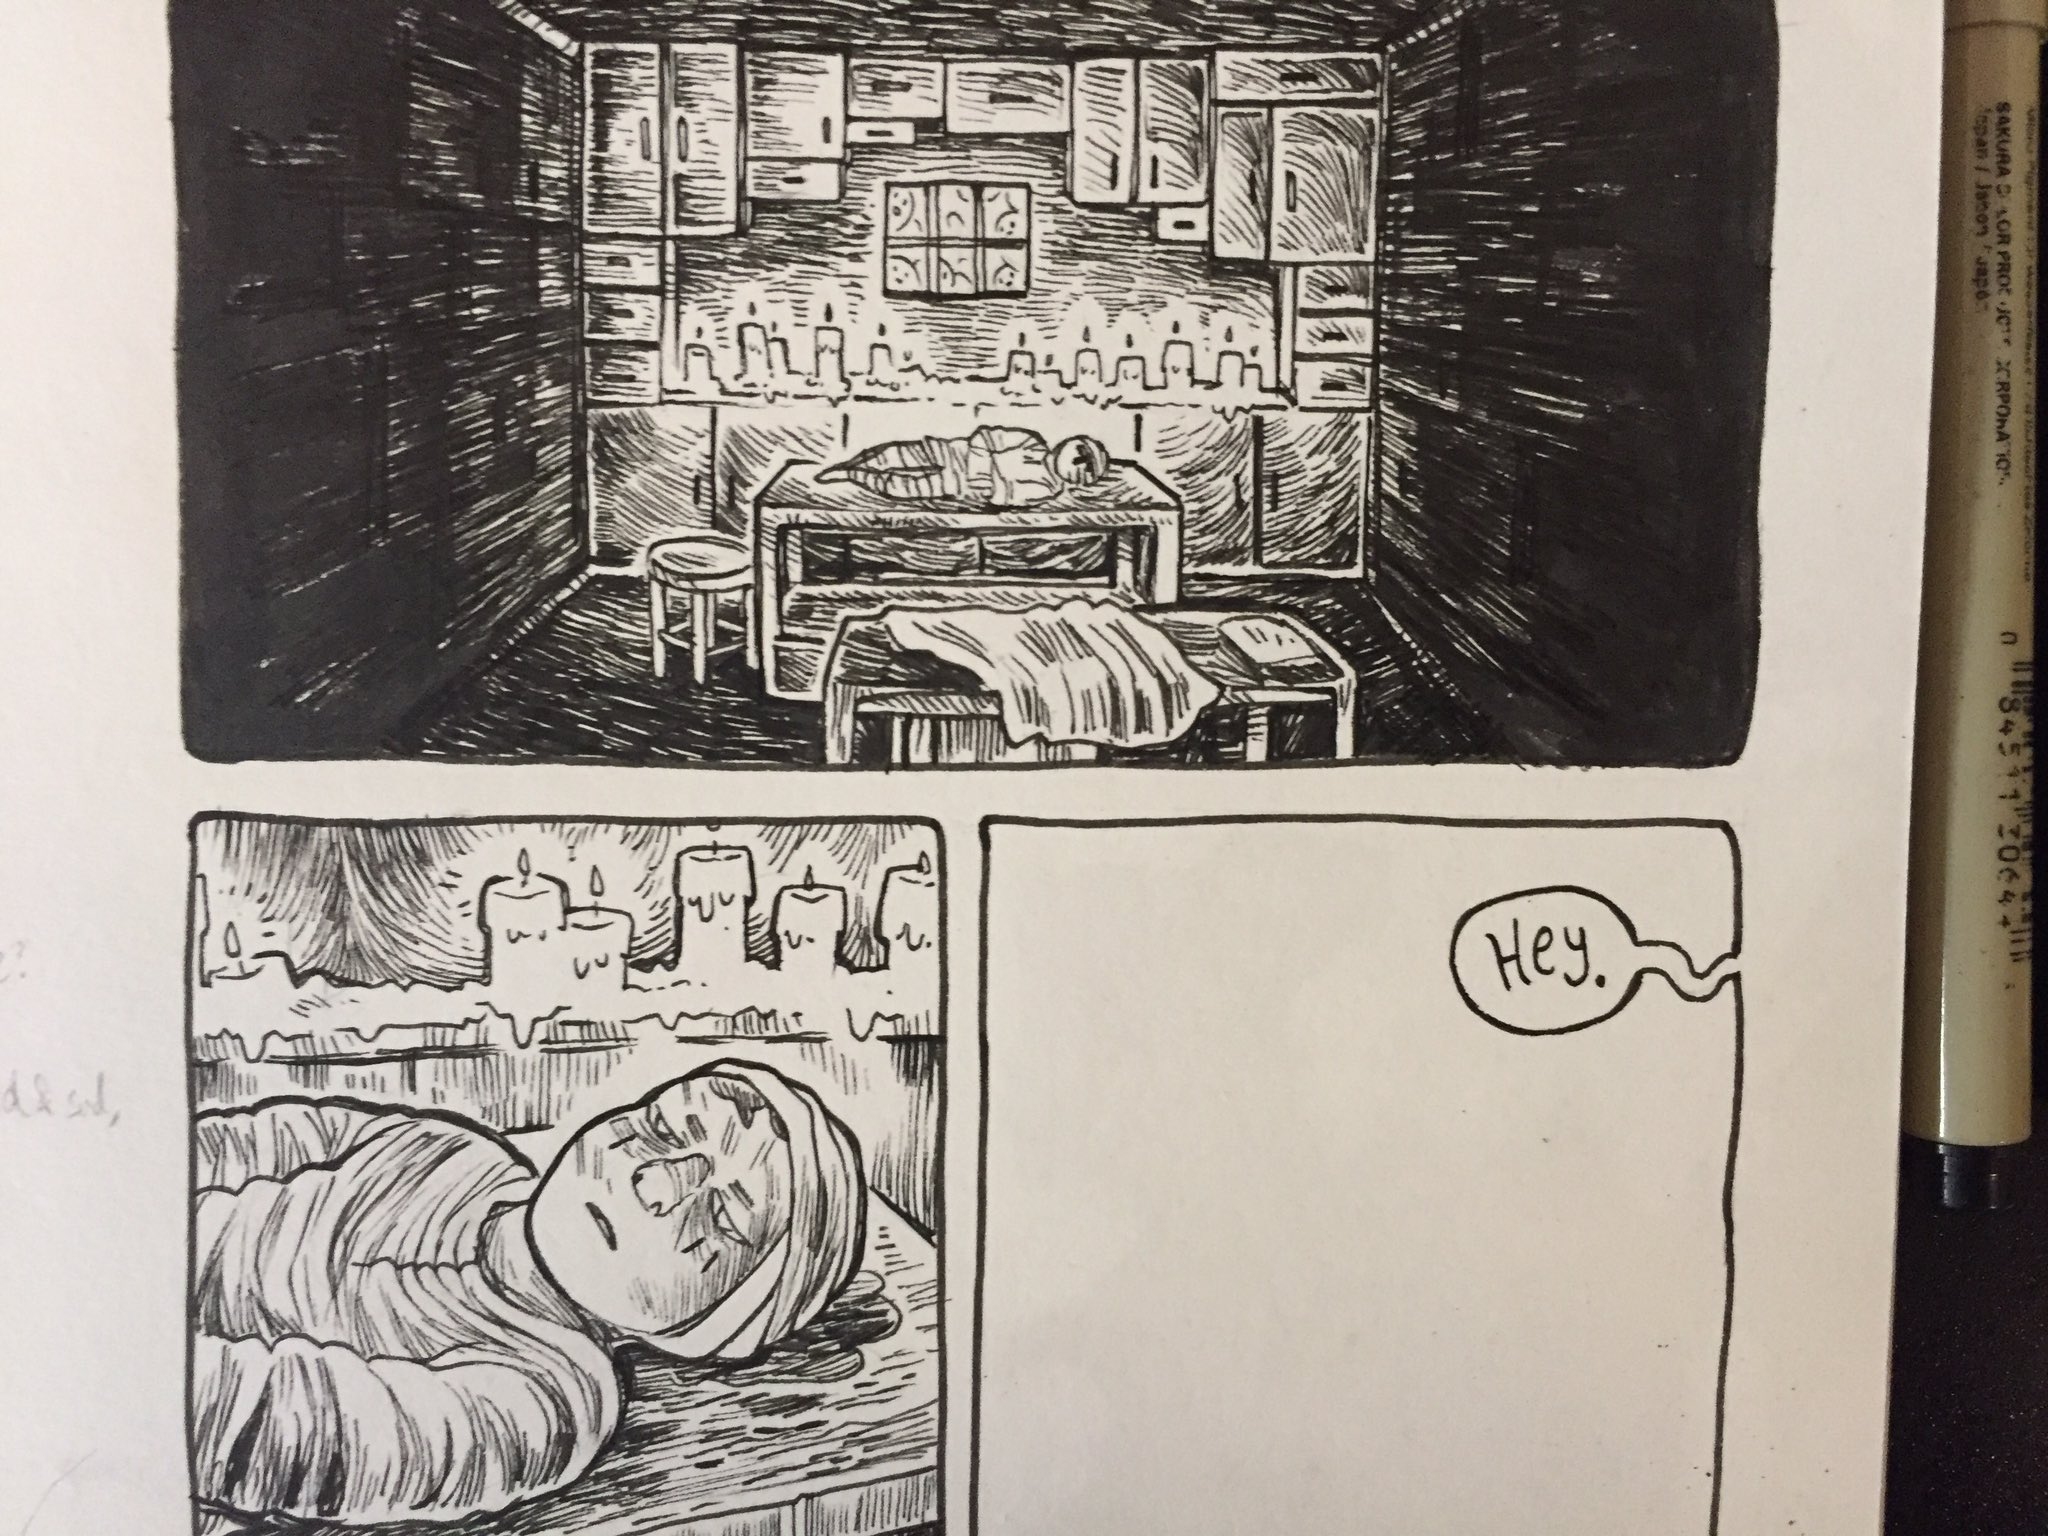 Next: @mariacfrantz inks-in-progress for her first graphic novel! https://t.co/6befQ2irdF